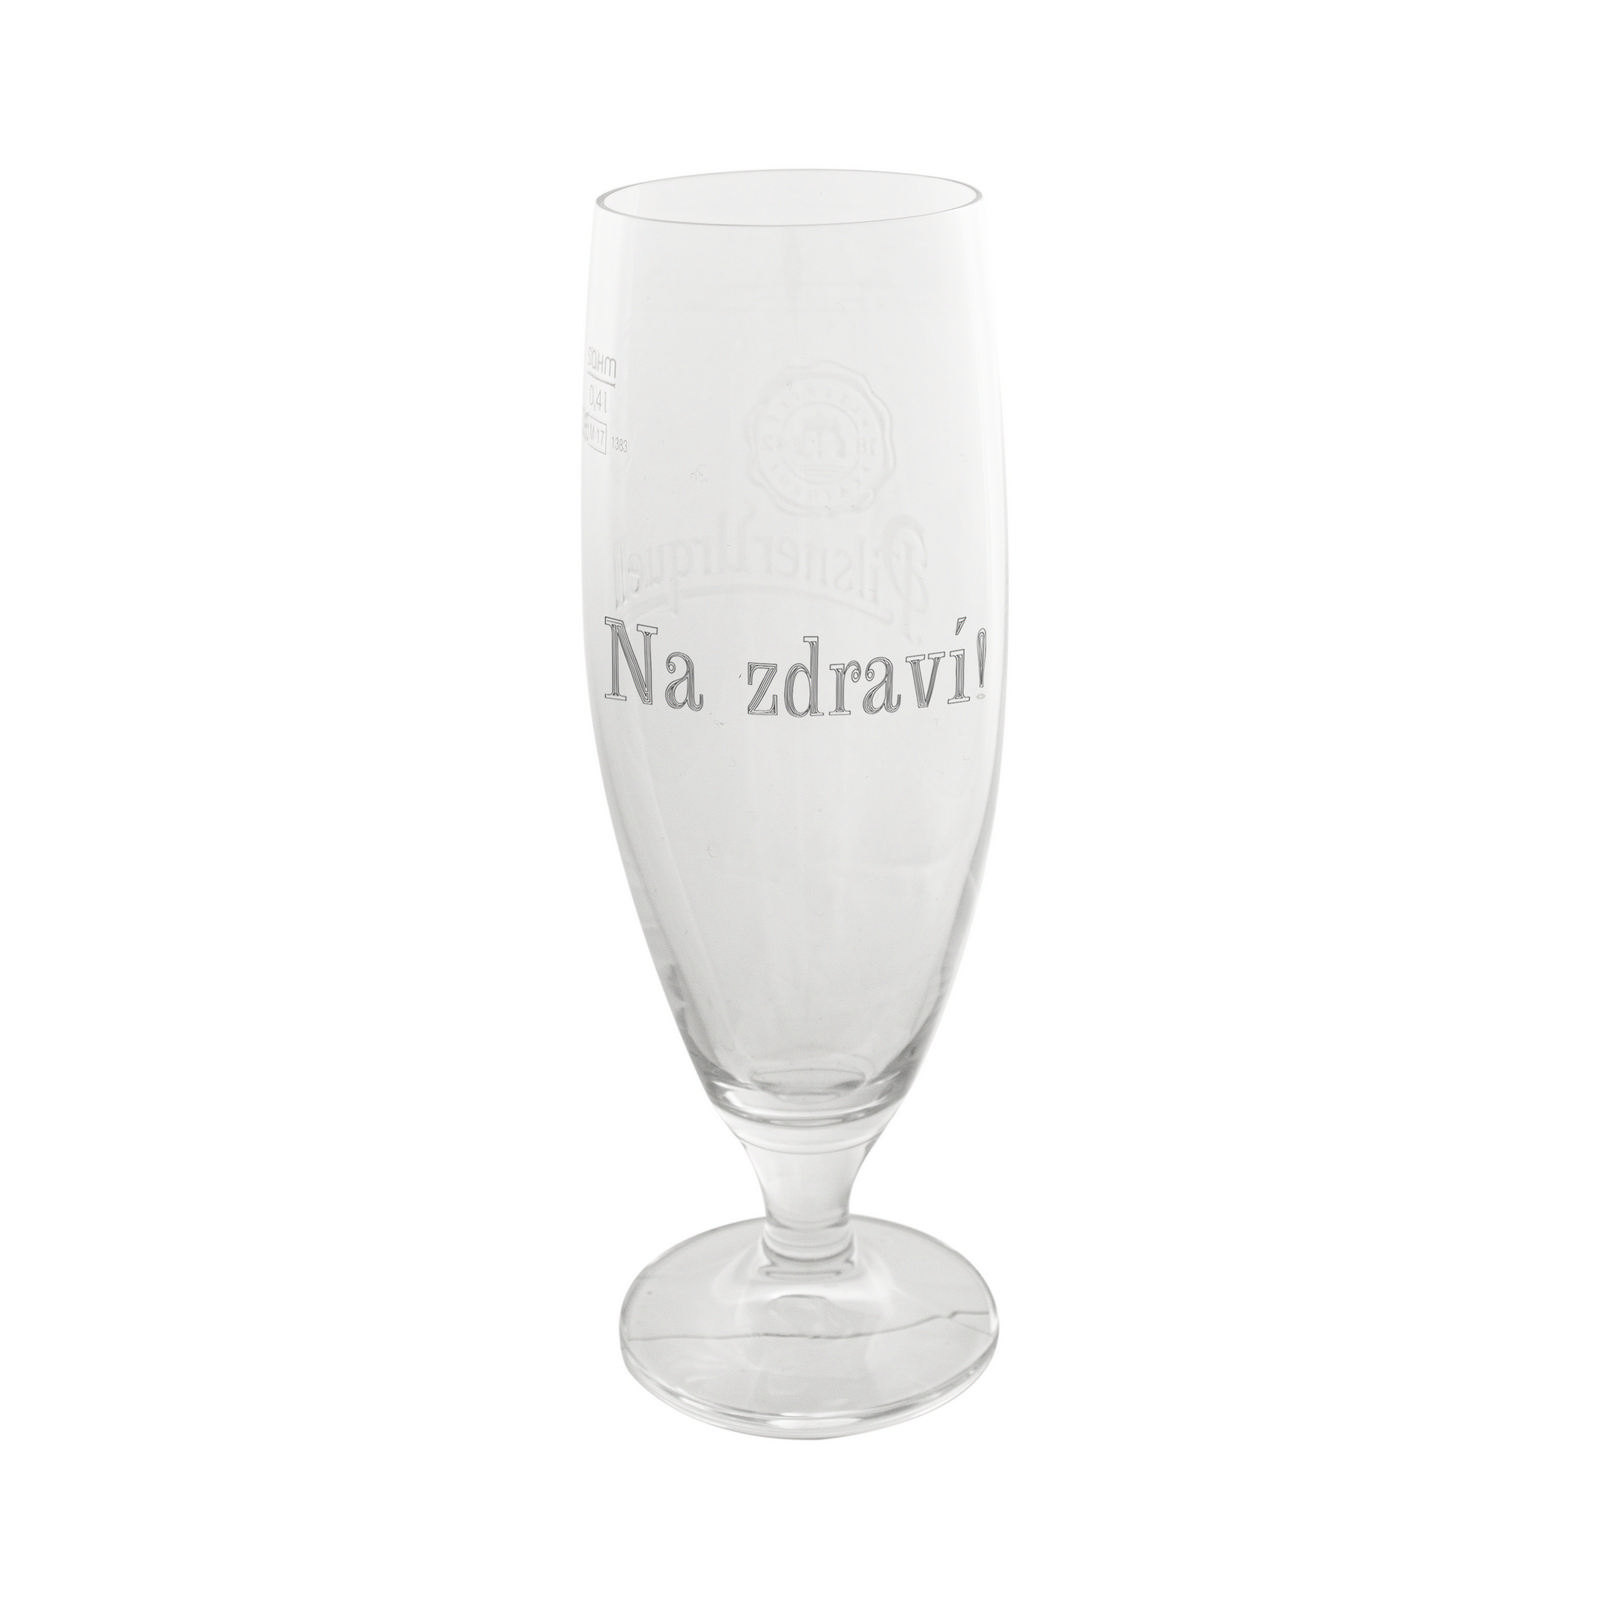 The Goblet Pilsner Urquell glass 0,3l with inscription